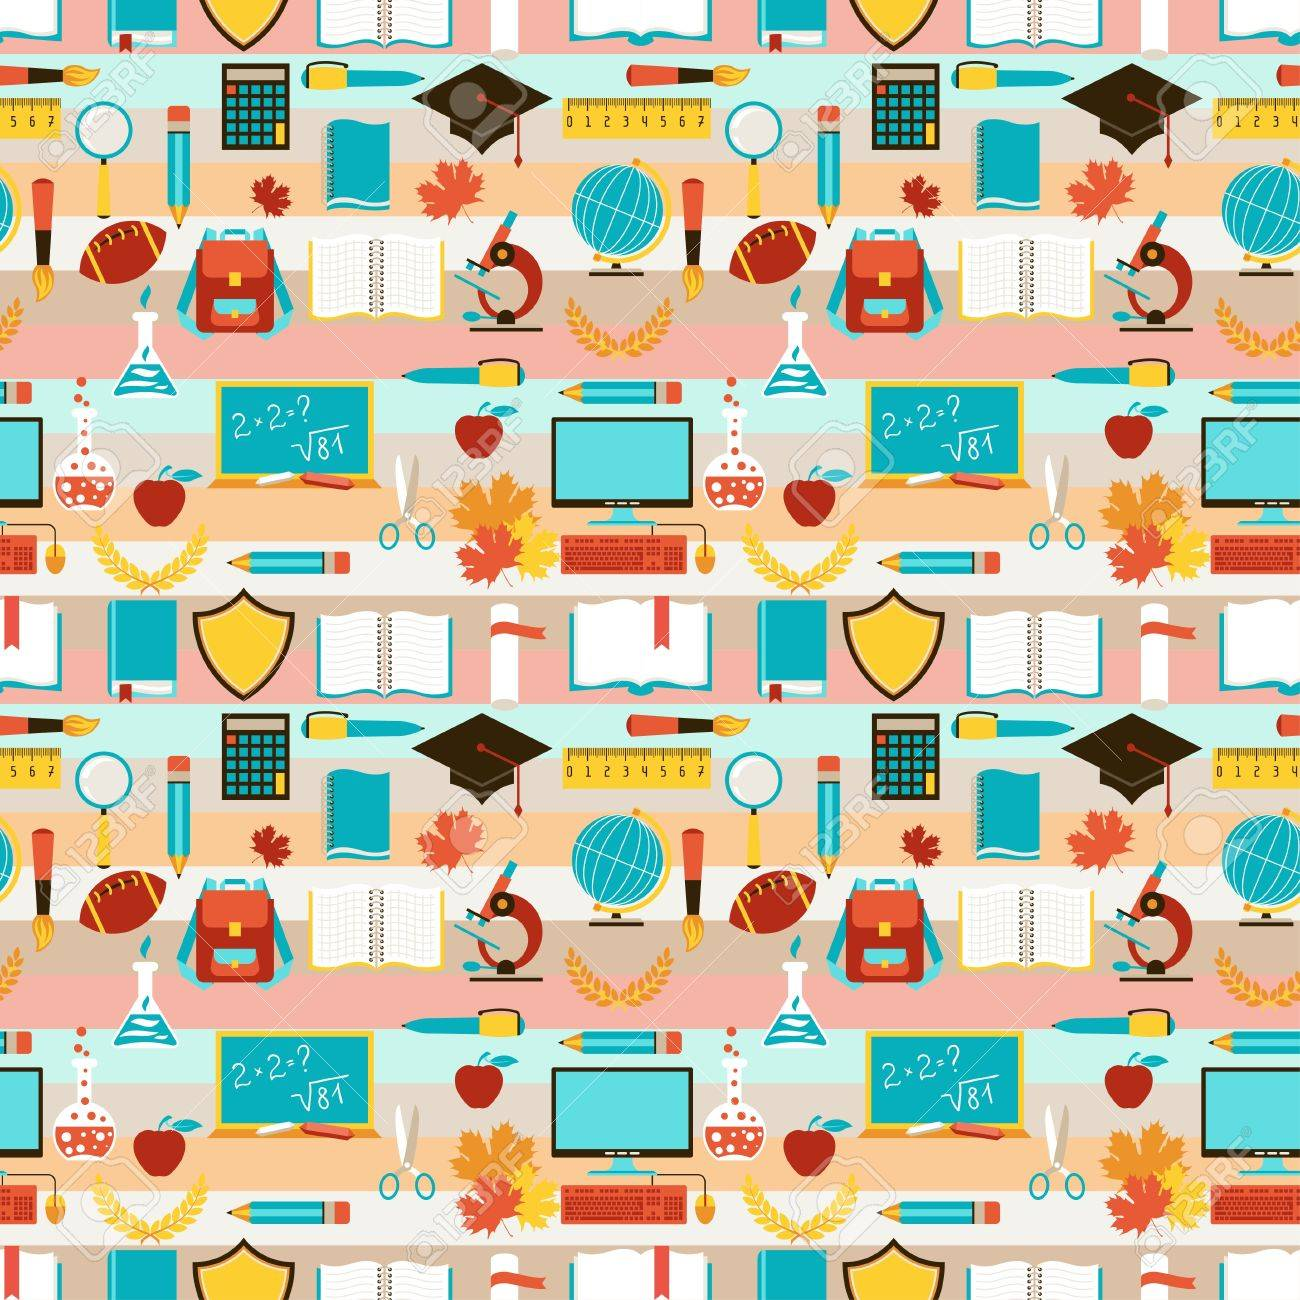 Seamless pattern with school icons. Stock Vector - 20503126